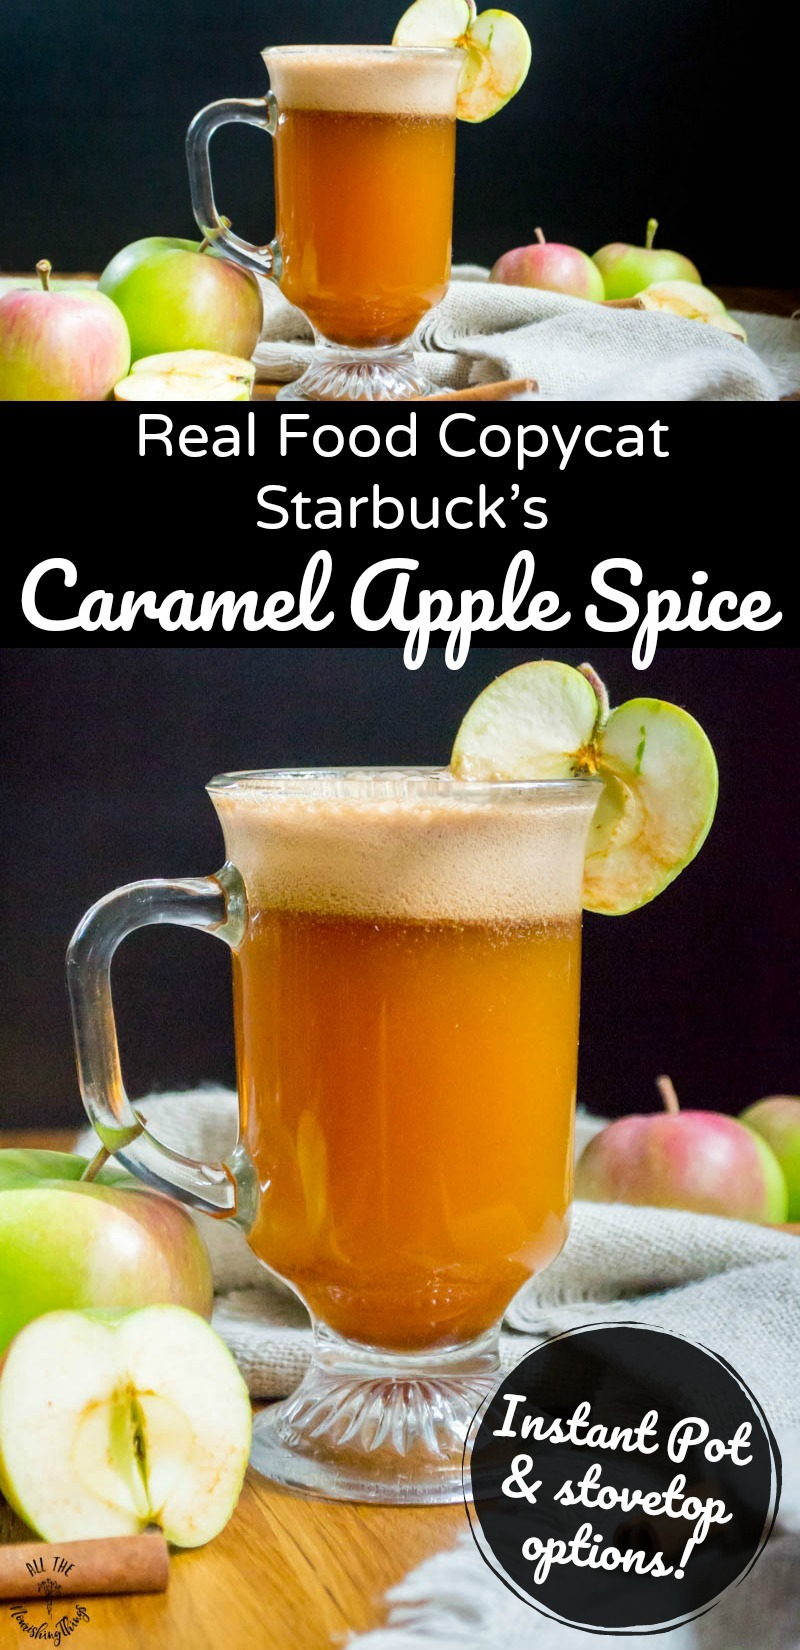 long pin image of real food copycat starbuck's caramel apple spice with text overlay